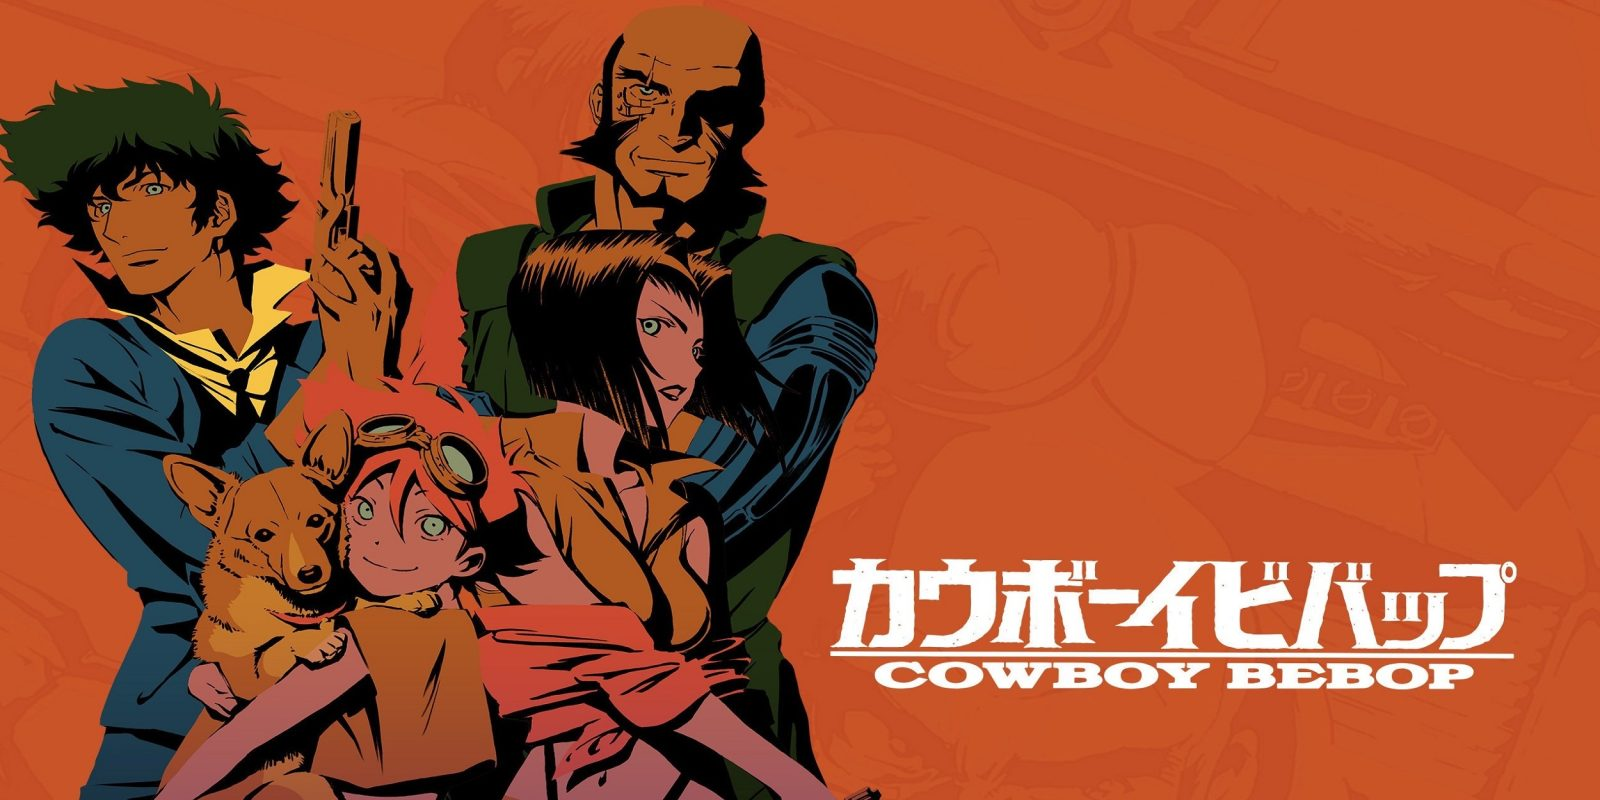 Just $5 will land you all of Cowboy Bebop in digital HD + more anime from $5